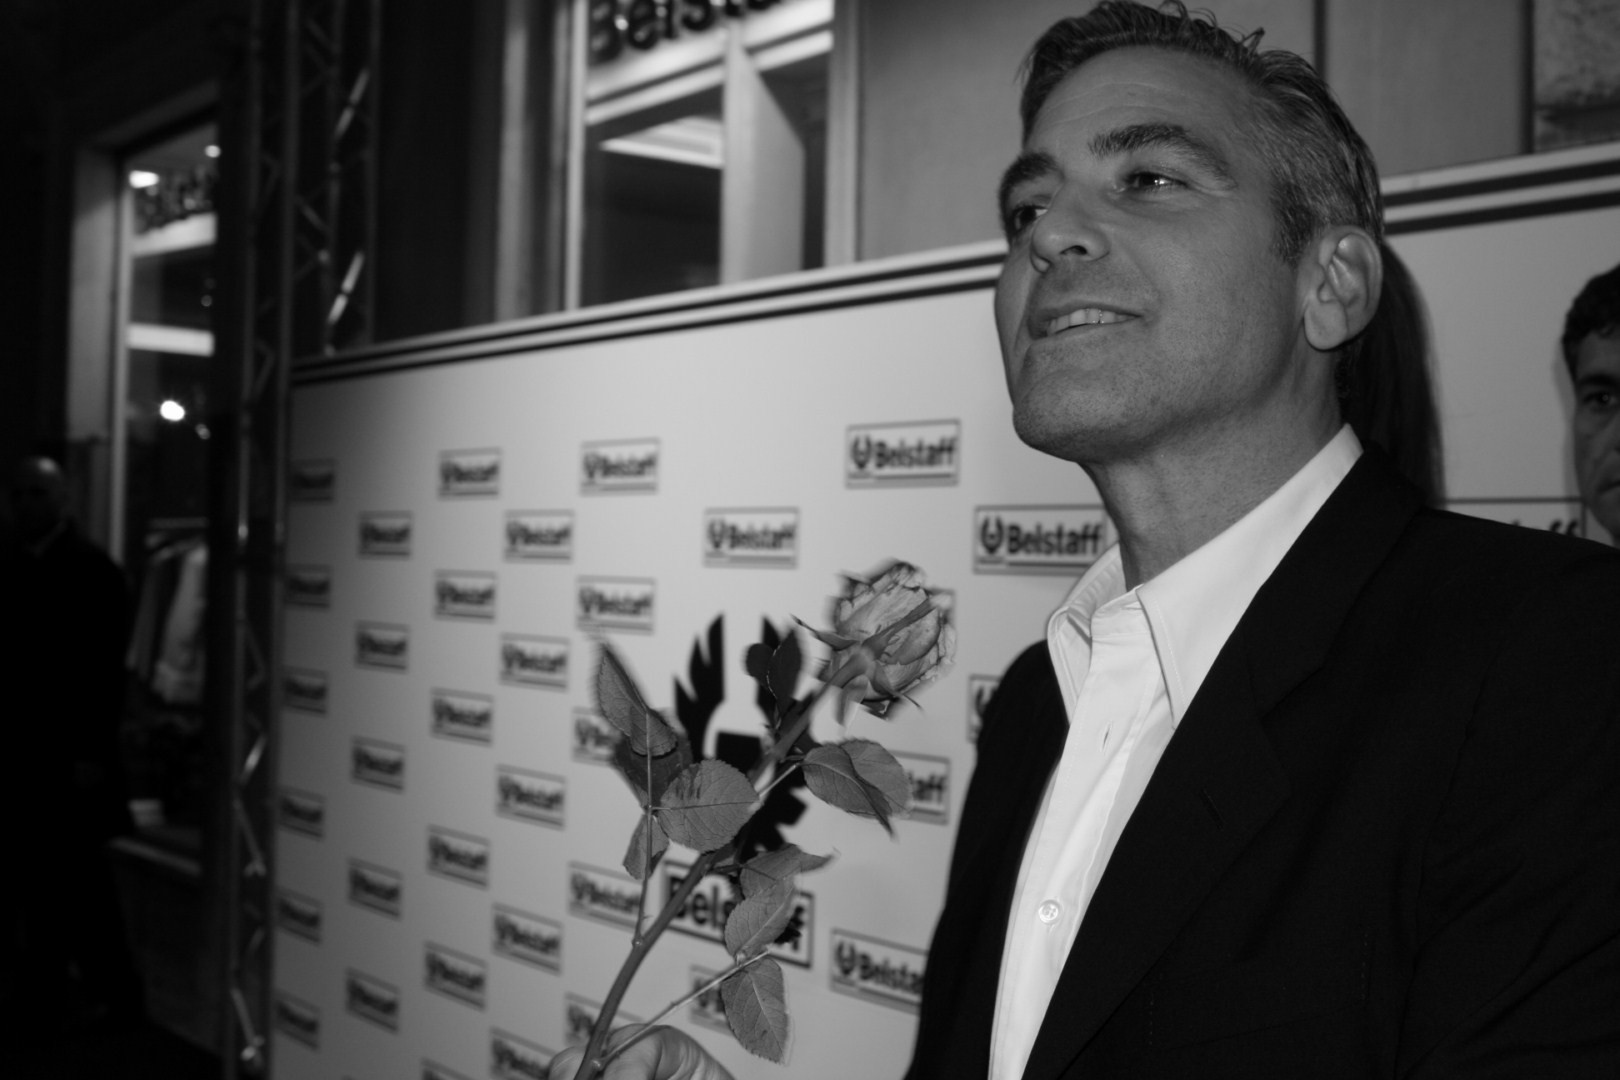 George Clooney - Actor, director, producer   All rights reserved  